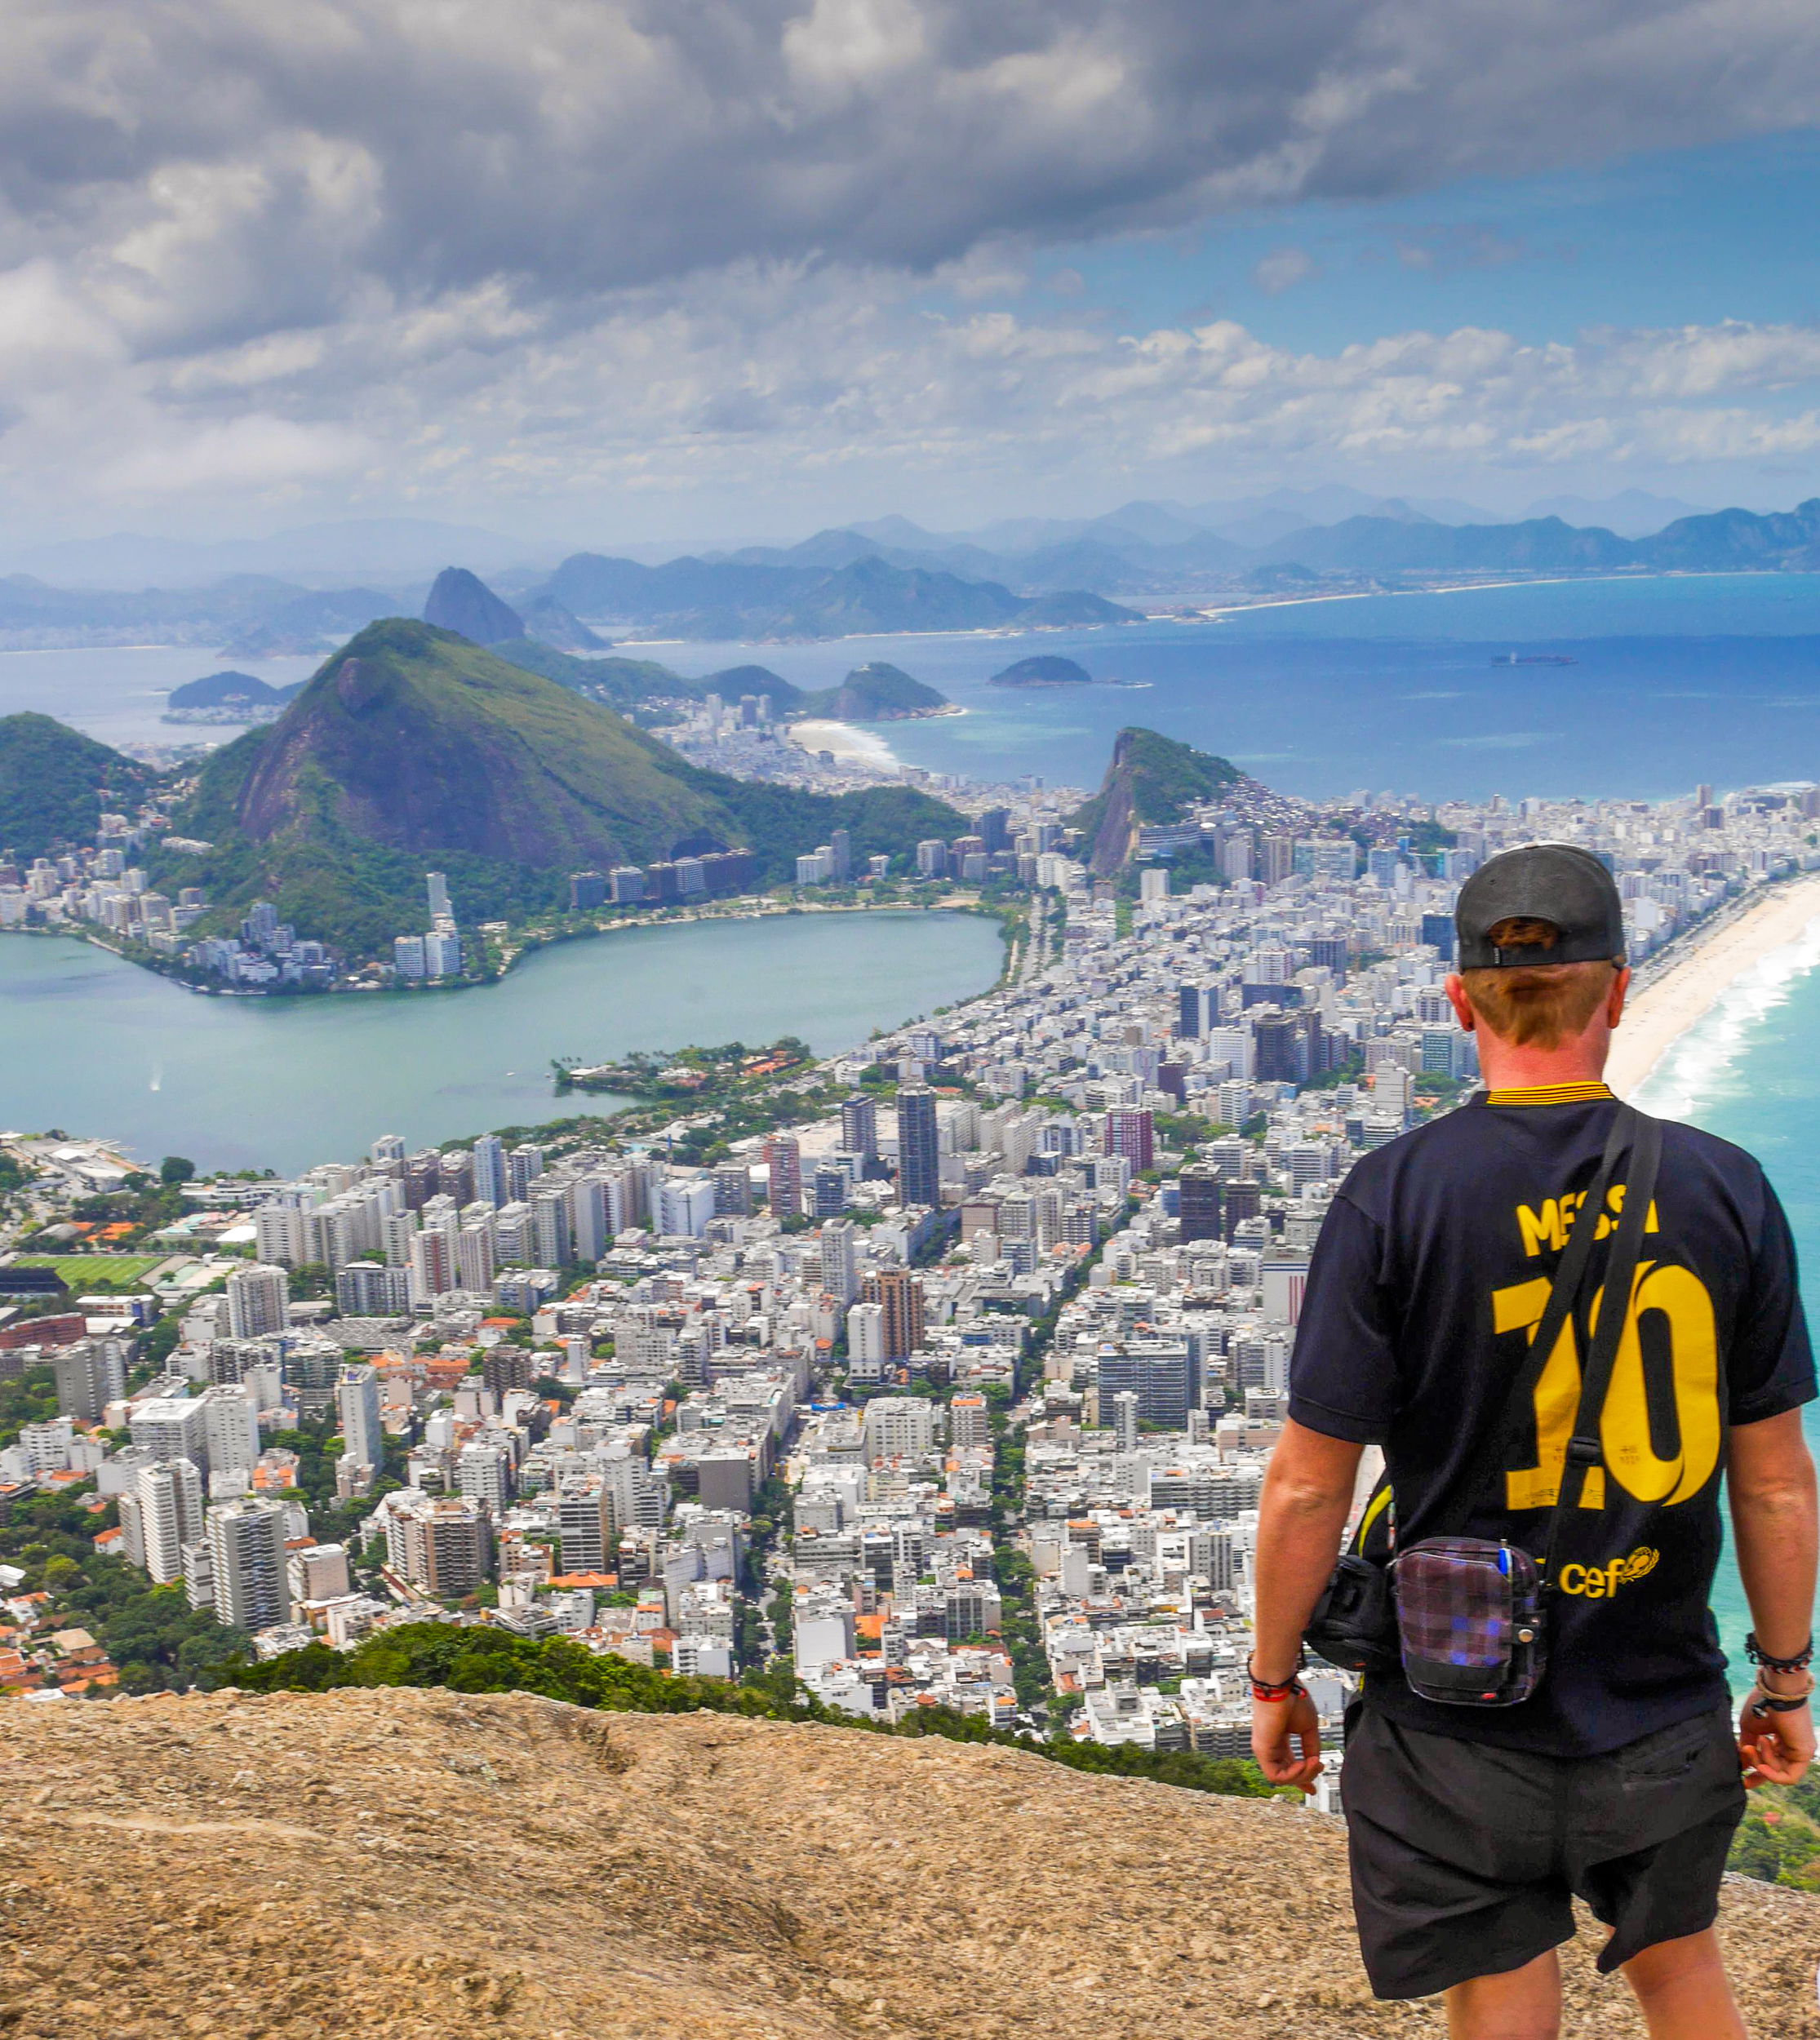 Rio de Janeiro 2015 - The start of my journey through some South American countries (Bolivia, Peru, Ecuador, Colombia)